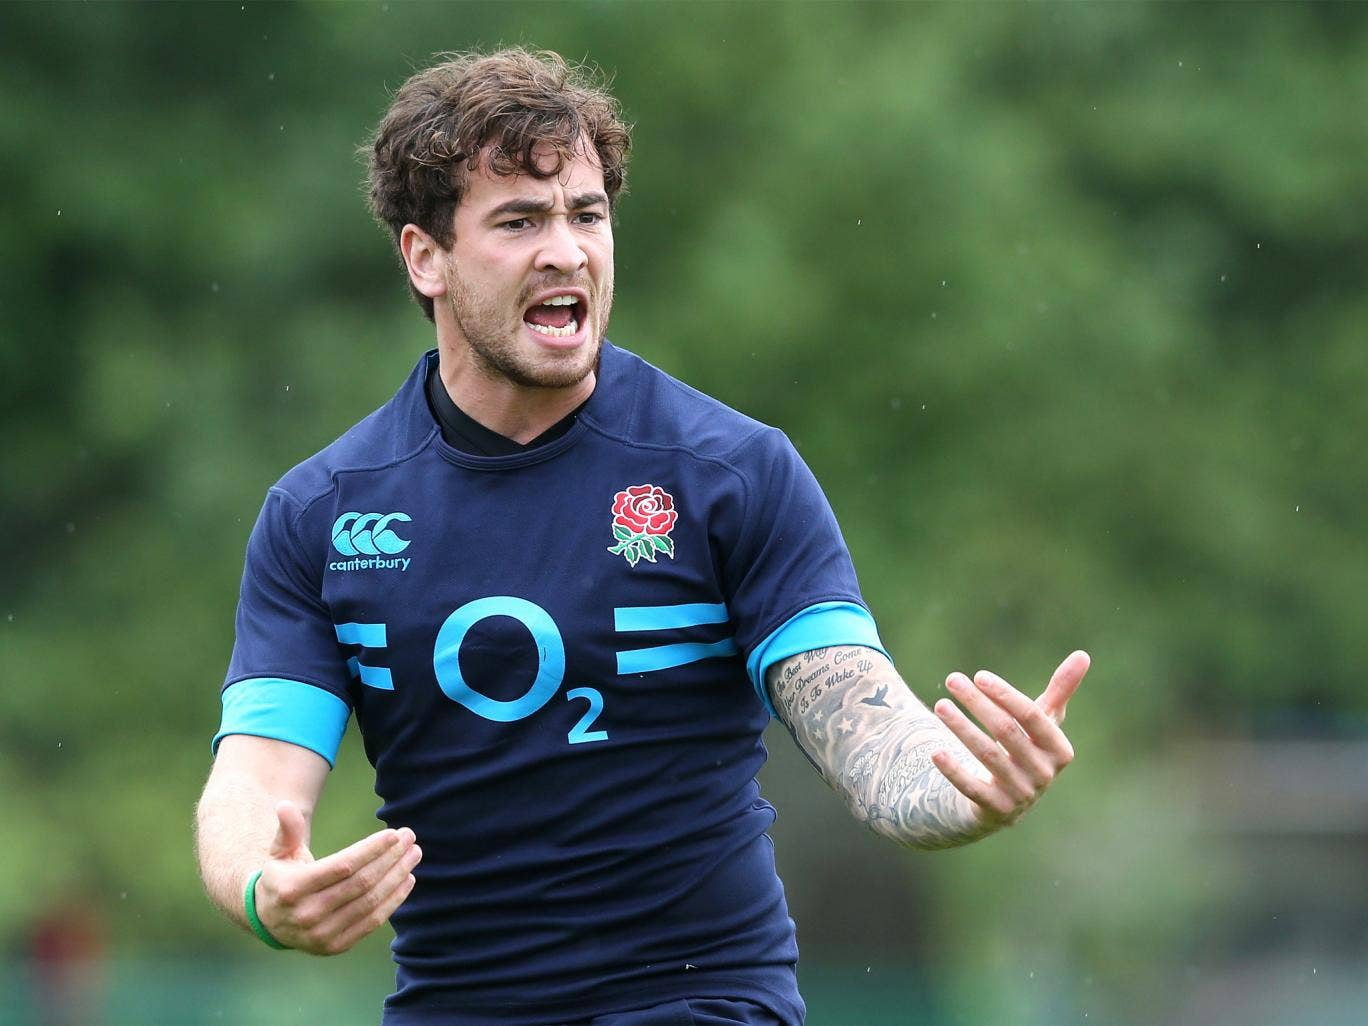 The Sale fly-half has been quick to make an impression on England coach Stuart Lancaster in training